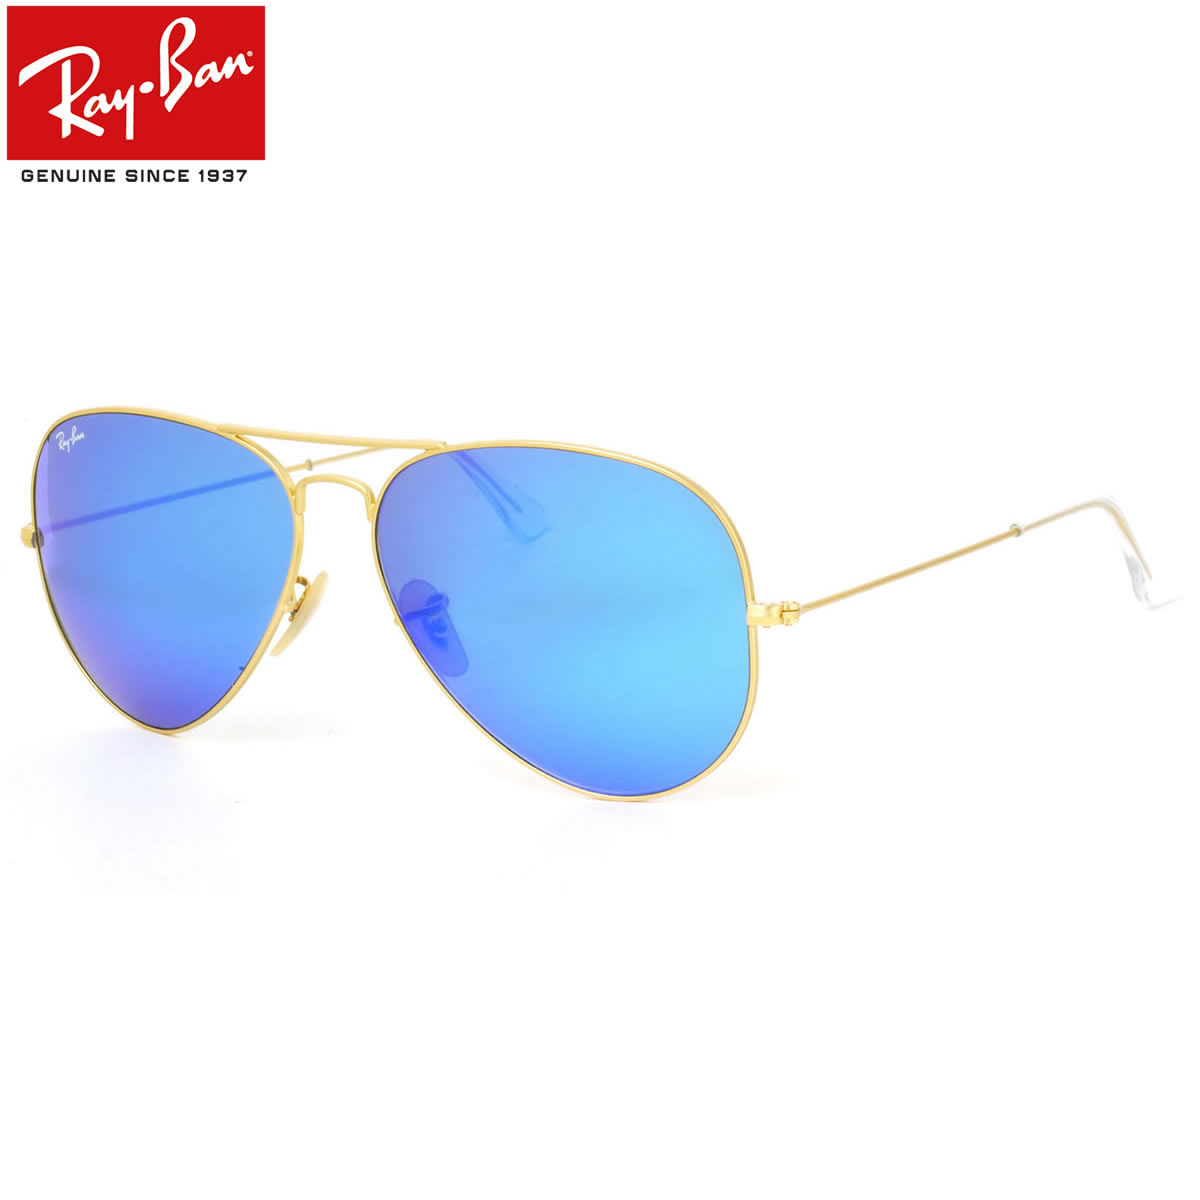 80477b29b3161 A new style of Ray-Ban titled